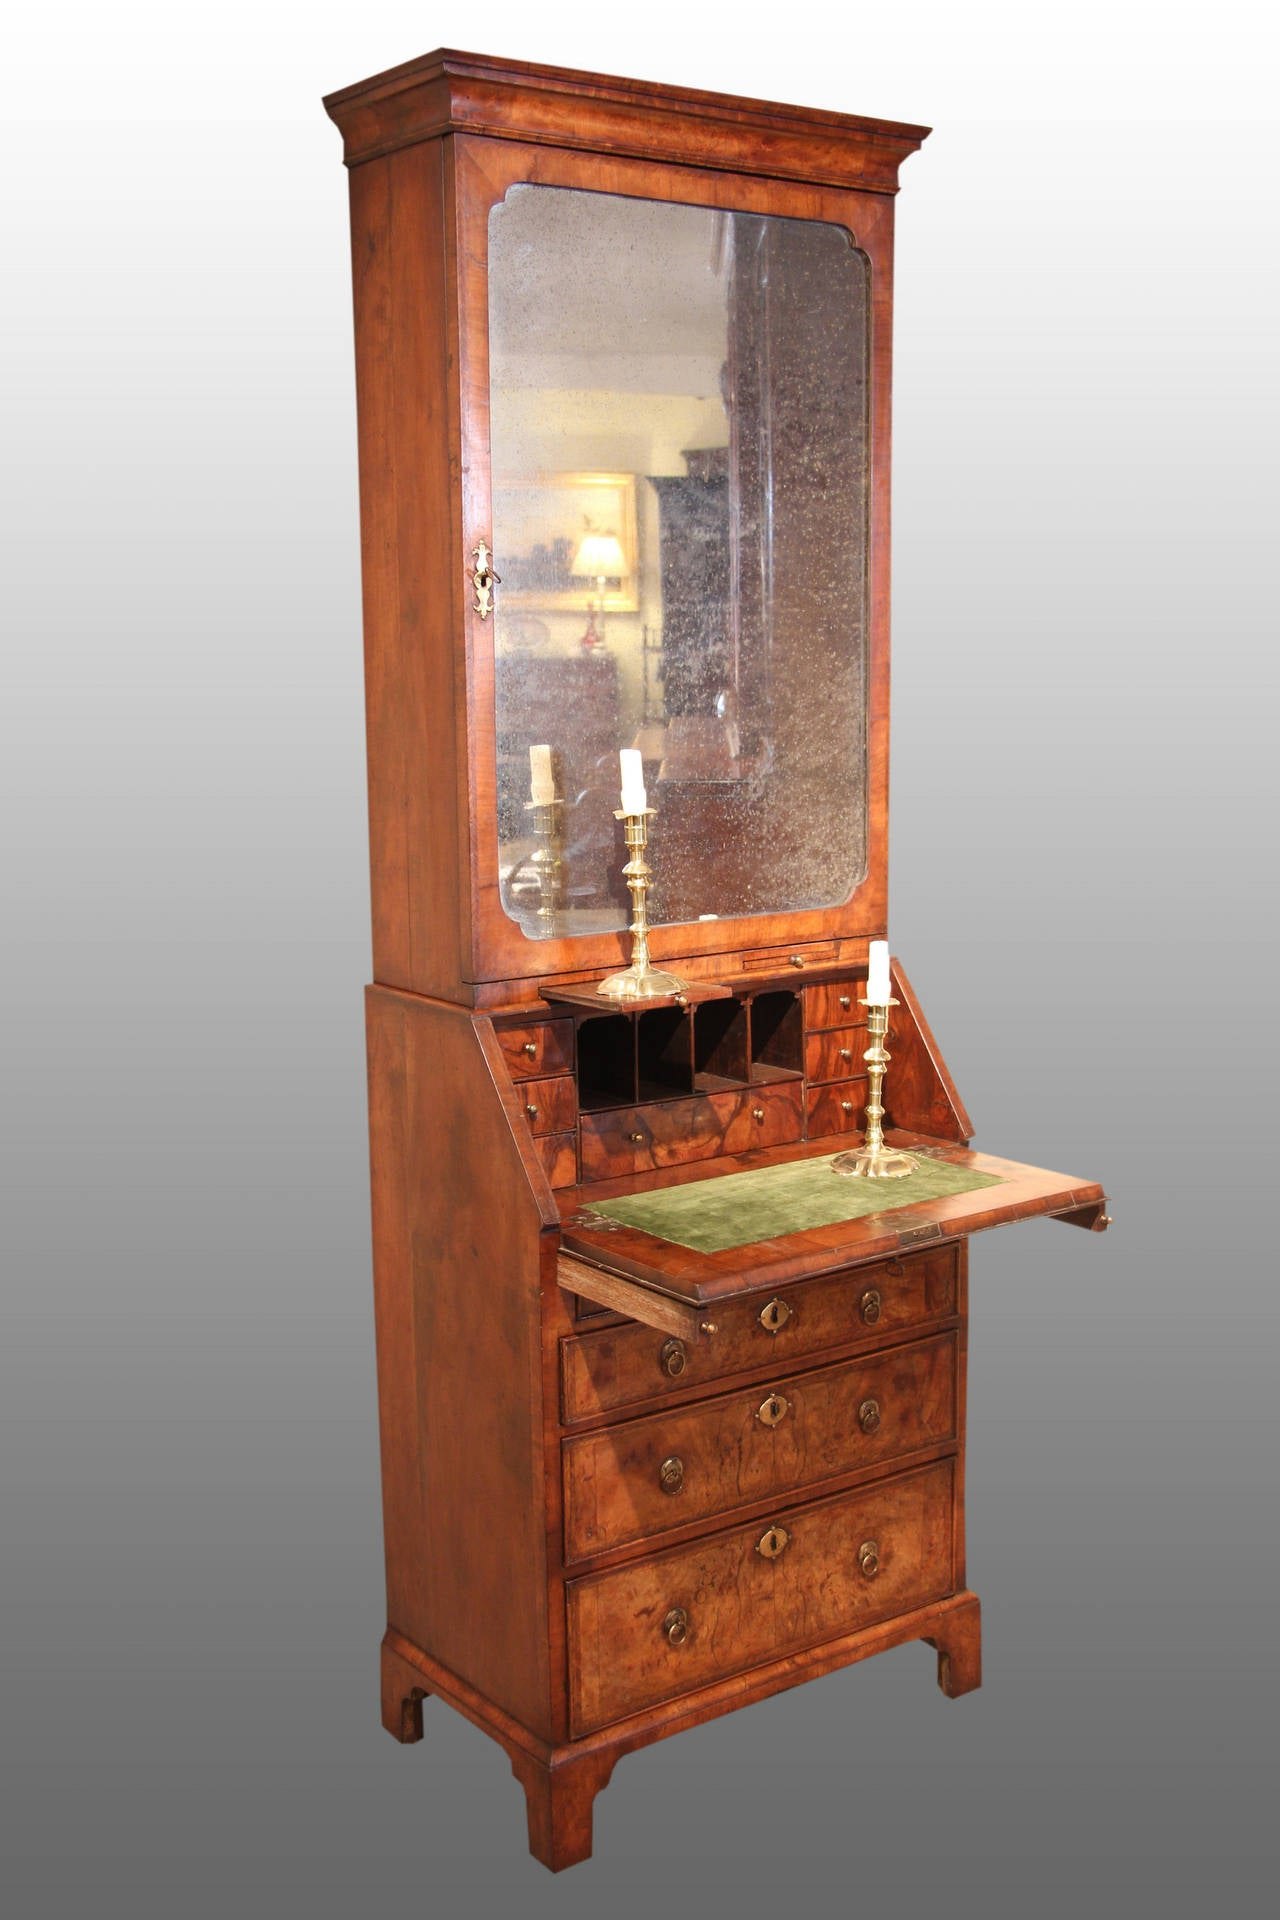 superb george i burr walnut bureau bookcase of elegant small proportion at 1stdibs. Black Bedroom Furniture Sets. Home Design Ideas